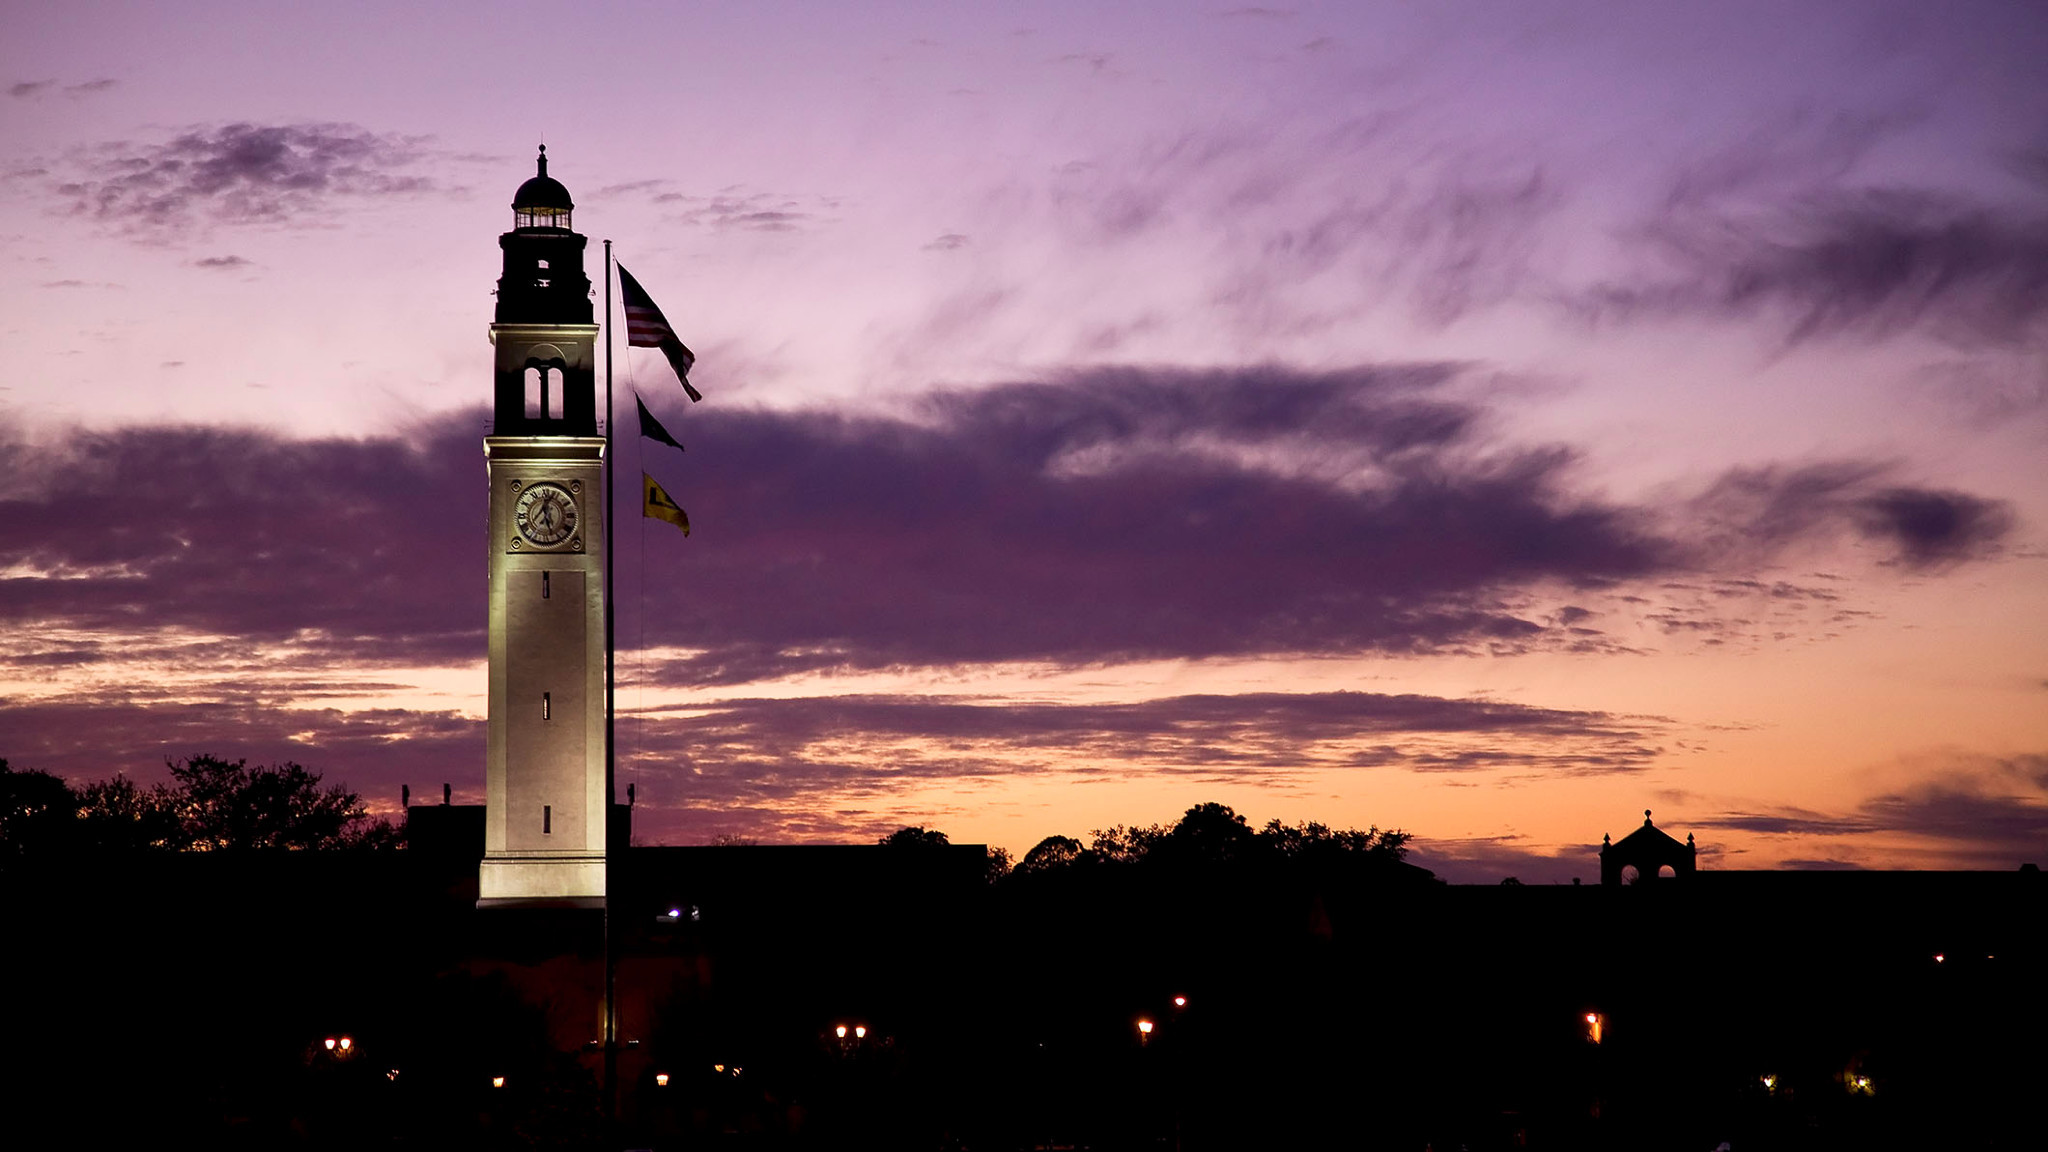 2048x1152 Louisiana State University Wallpaper WallpaperSafari